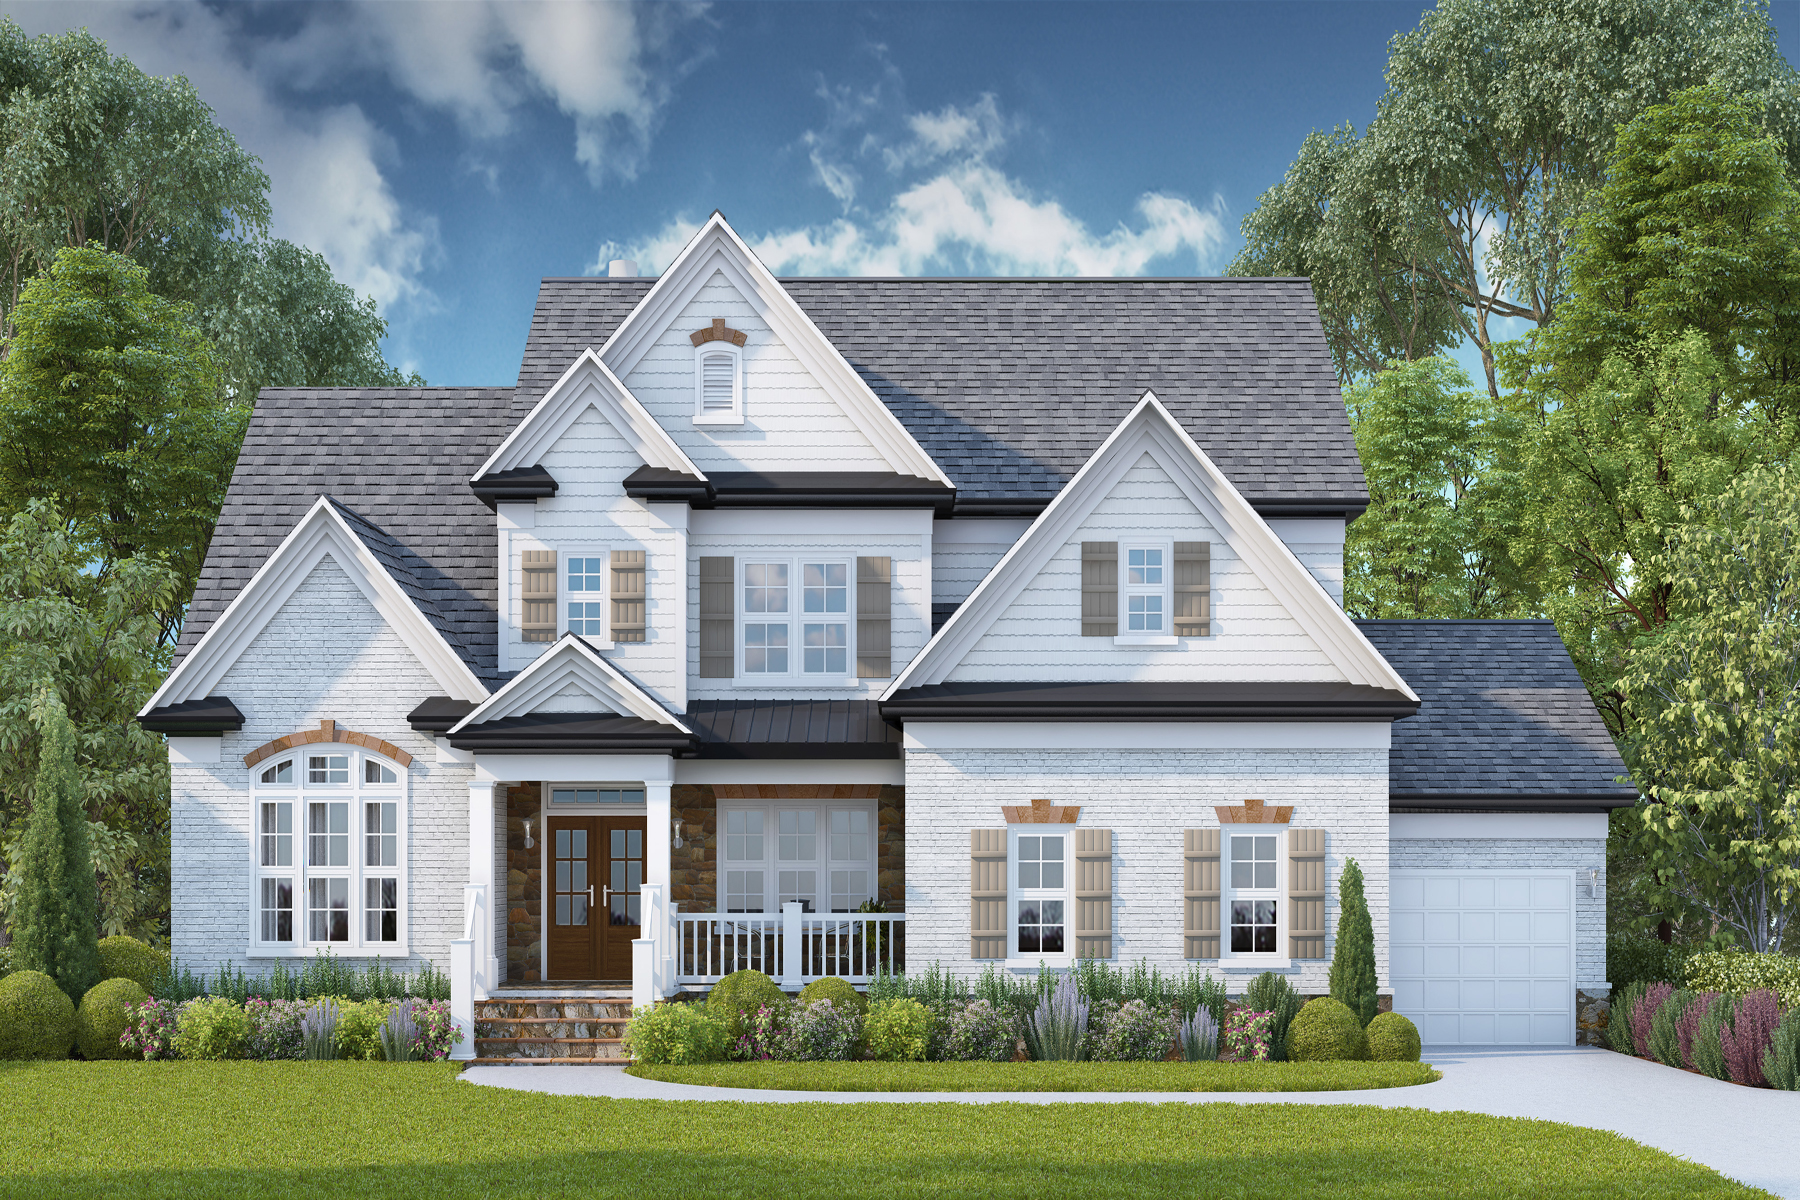 Single Family Homes for Active at New Construction On Great Lot In Swim Tennis Community 13133 Overlook Pass Roswell, Georgia 30075 United States